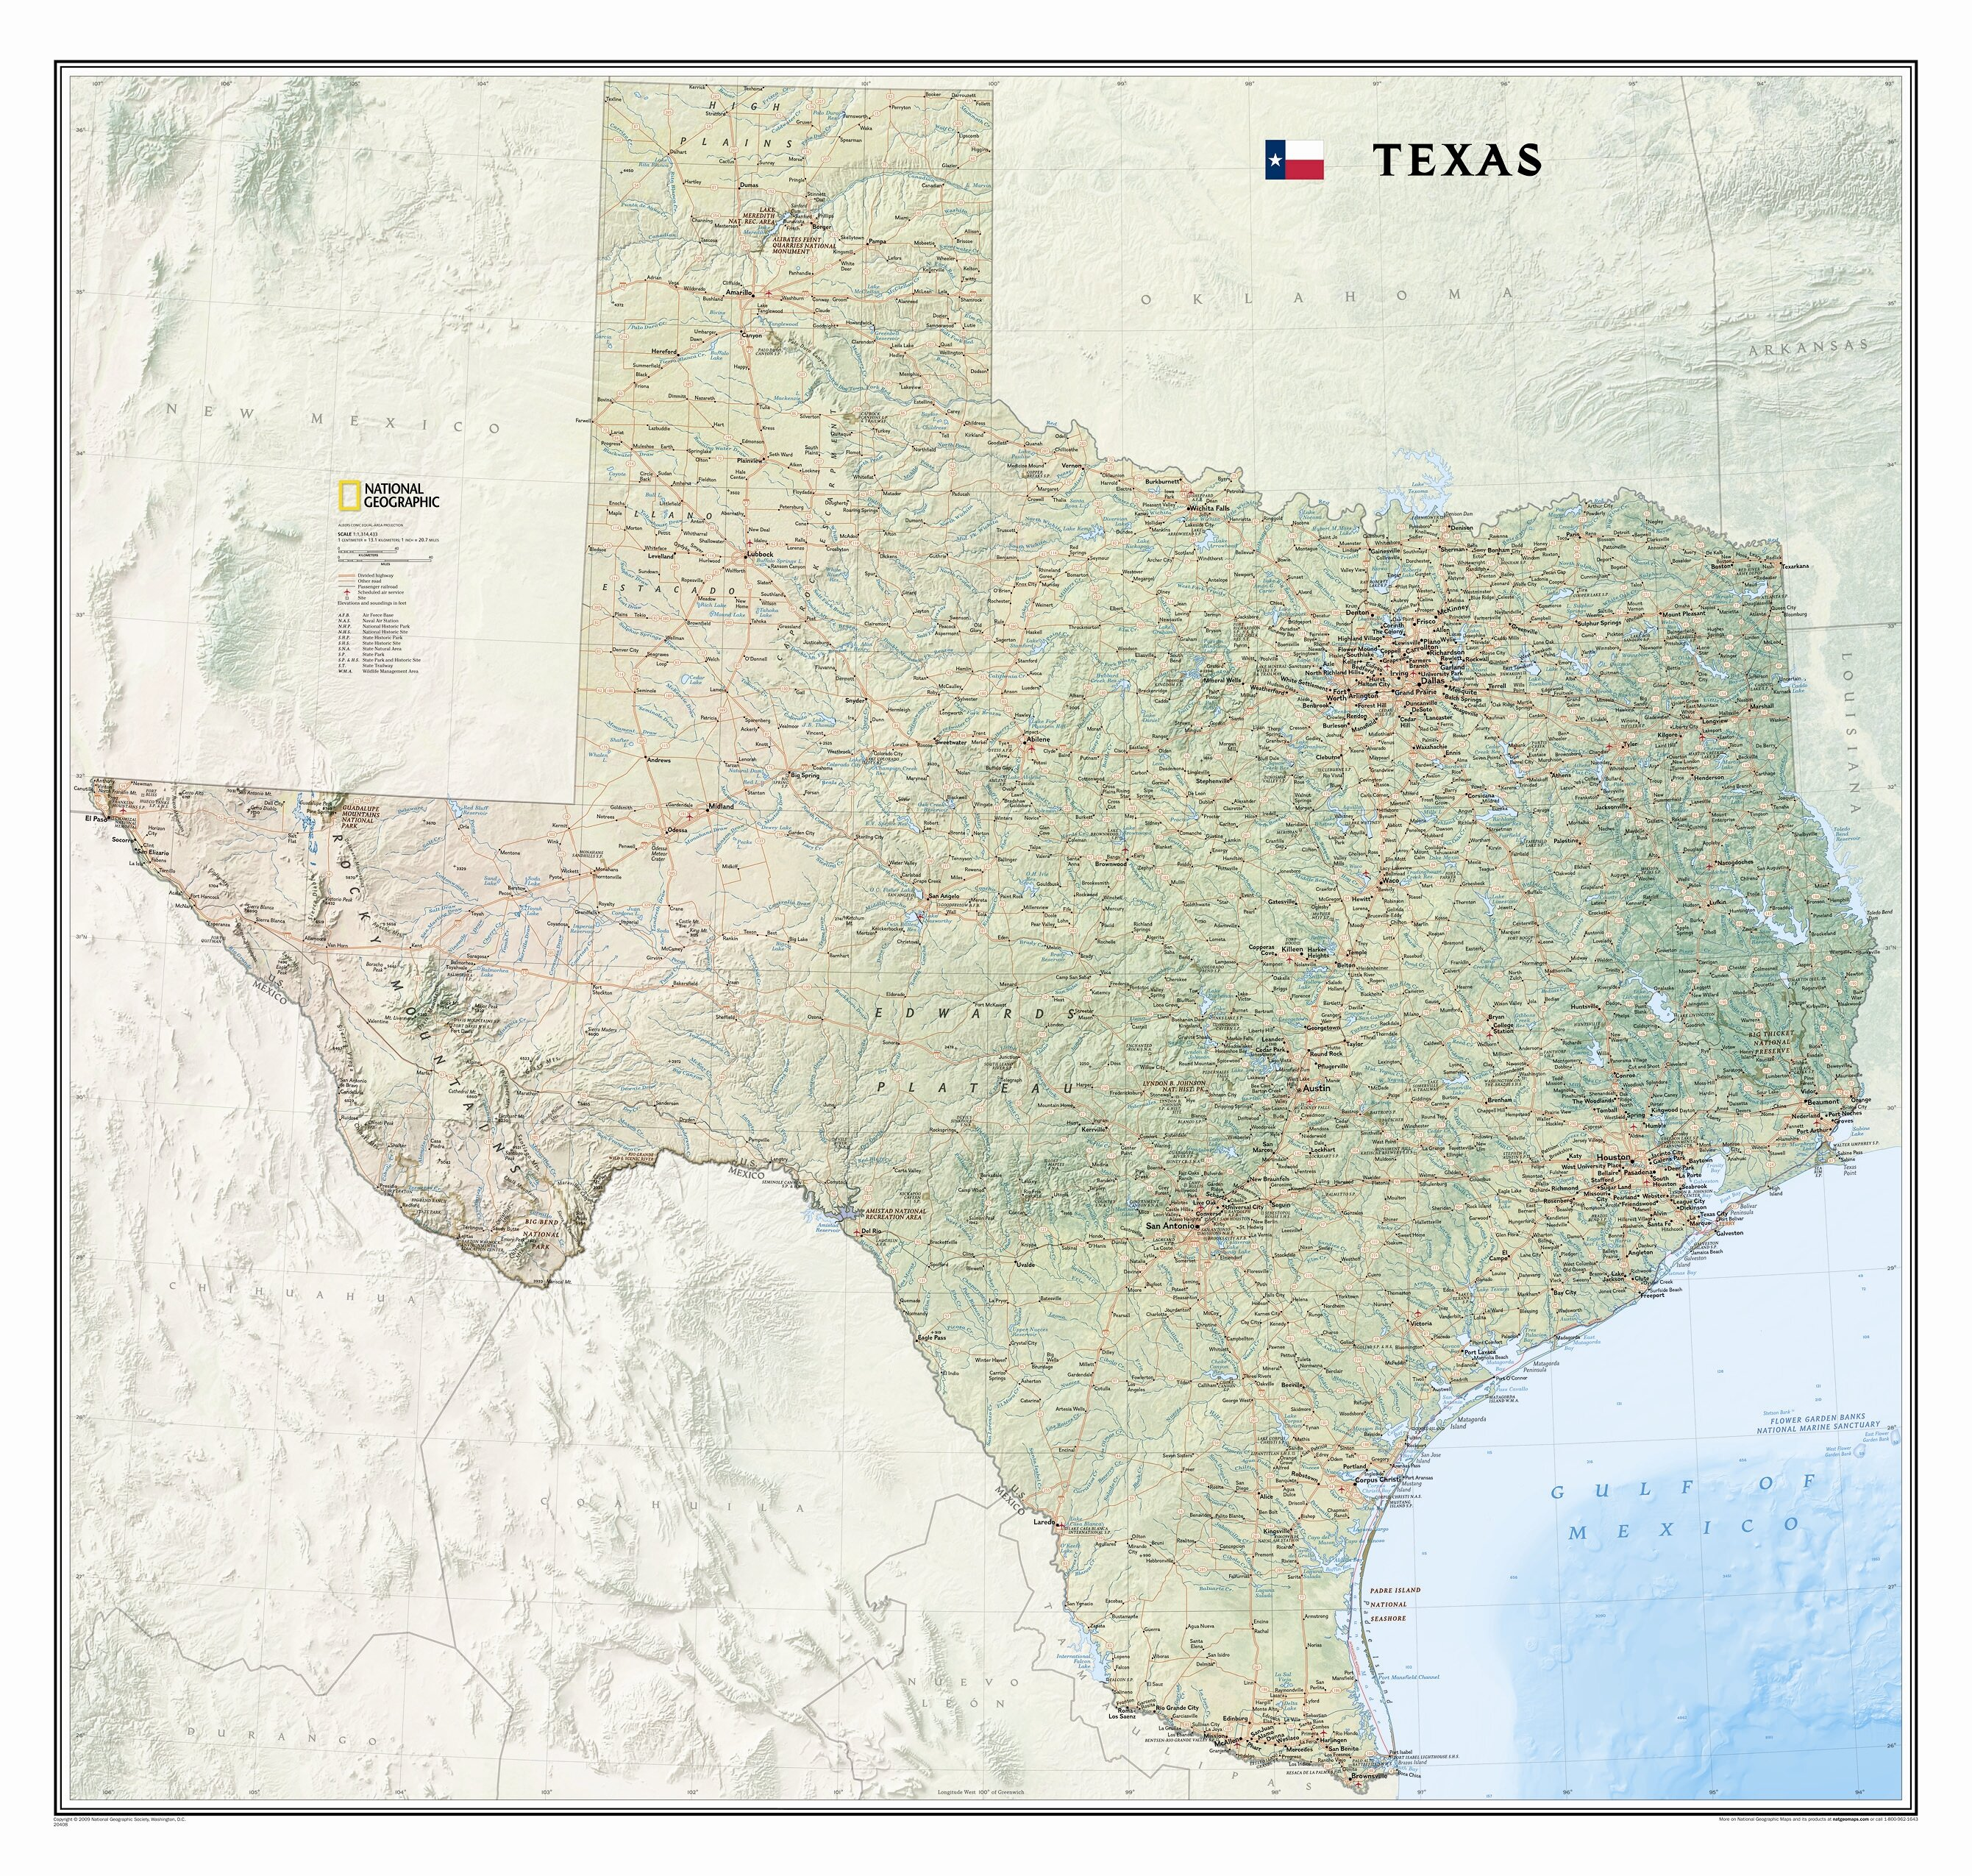 National Geographic Maps Texas State Wall Map Reviews Wayfair - Texas state map